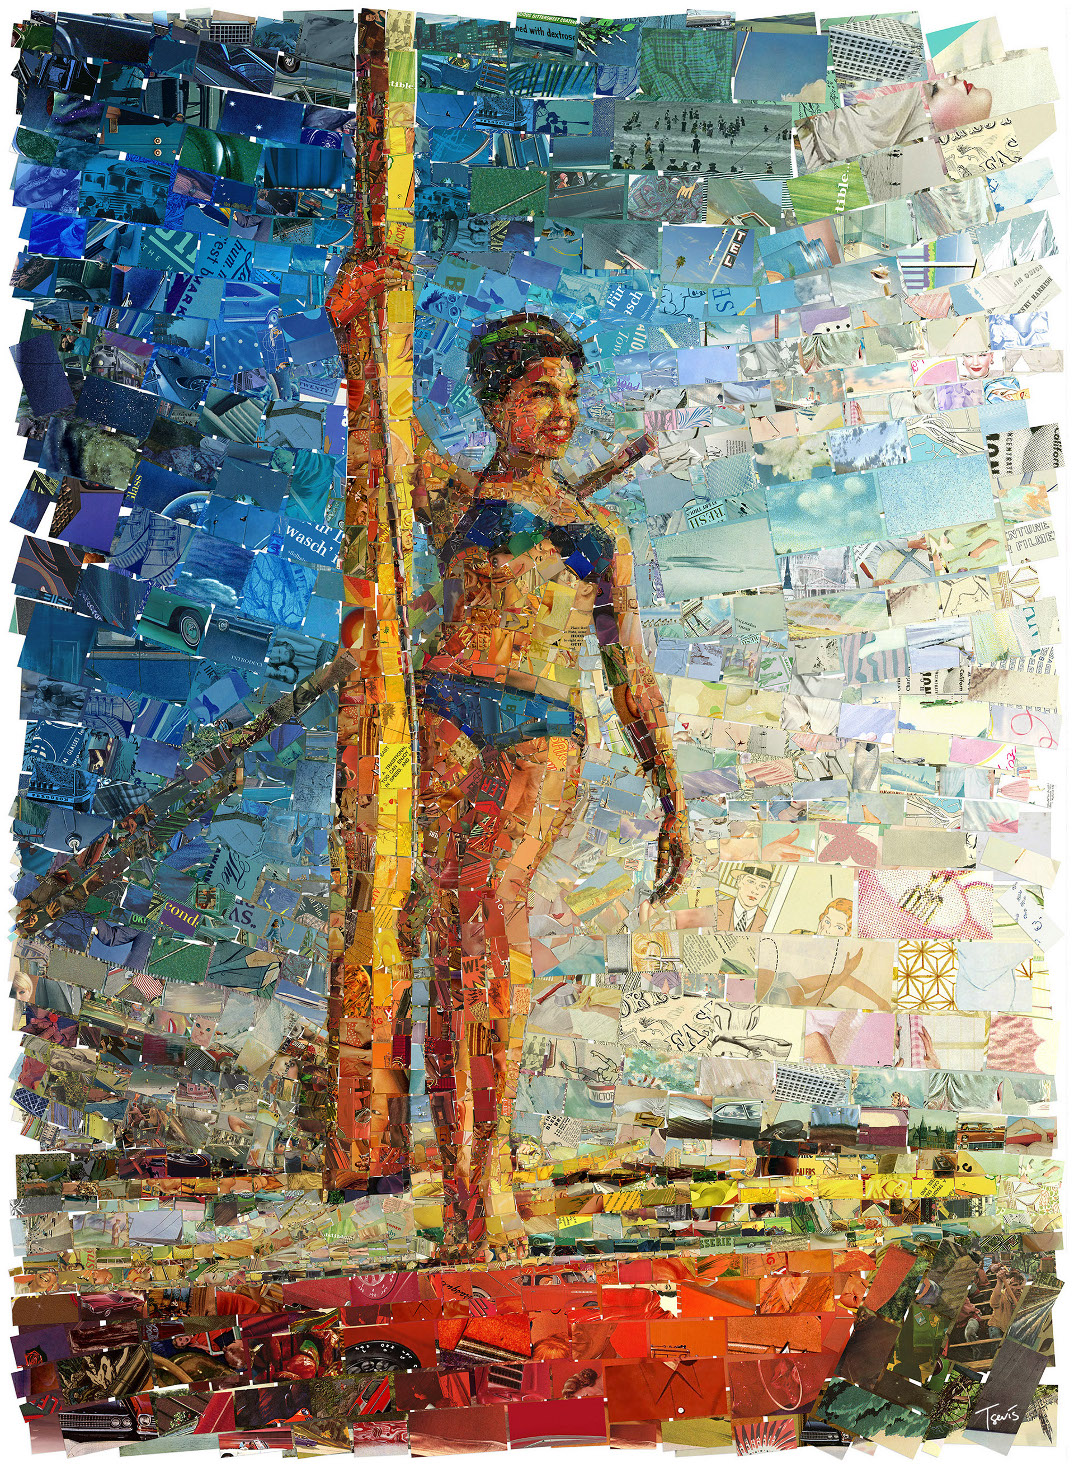 mosaici-collage-riviste-anni-50-60-endless-summer-charis-tsevis-01